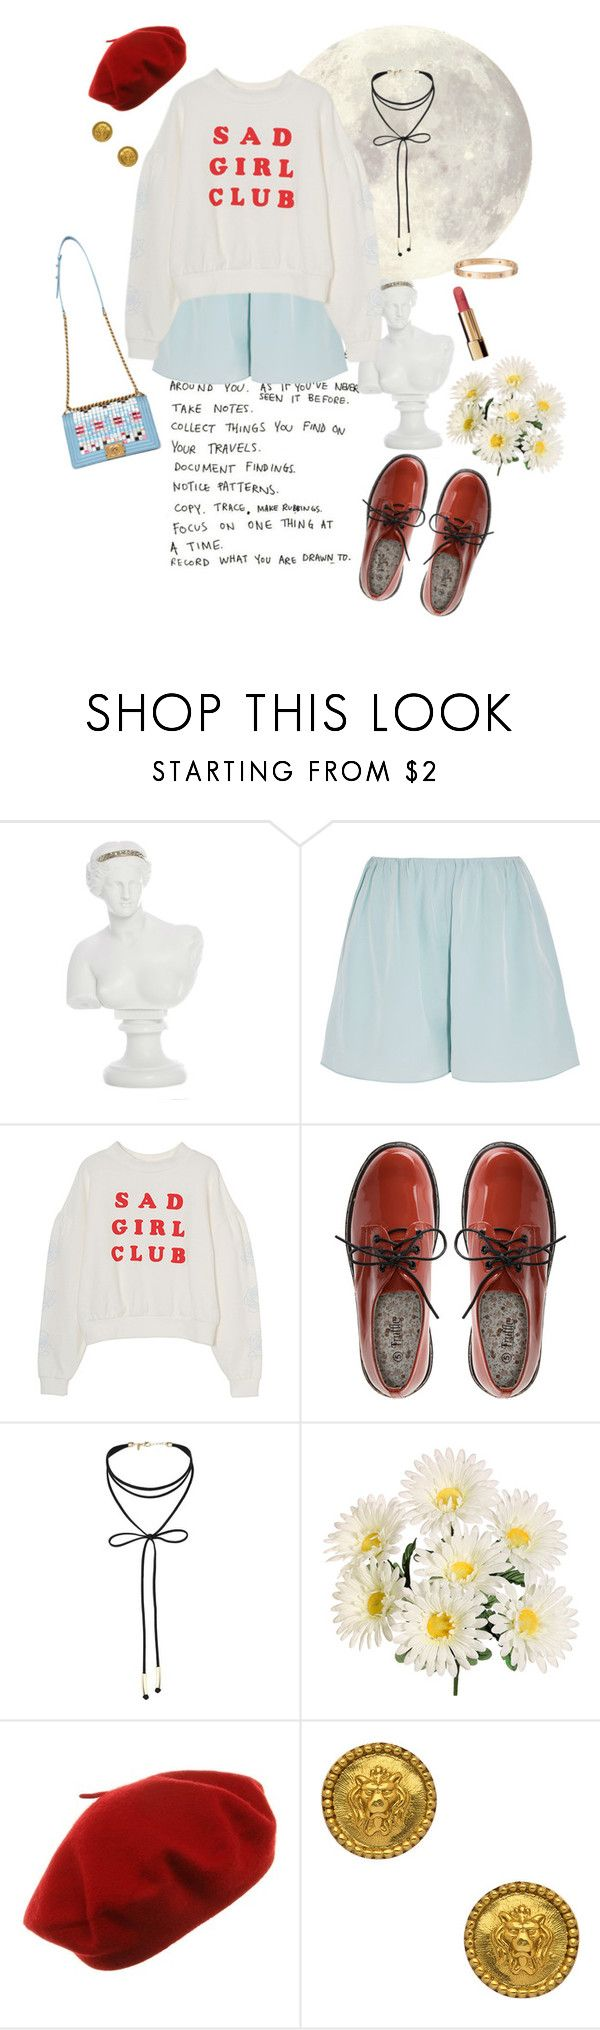 """""""Sin título #837"""" by gabriellasan ❤ liked on Polyvore featuring Elizabeth and James, Miss Selfridge, Chanel, Julie Vos and Cartier"""